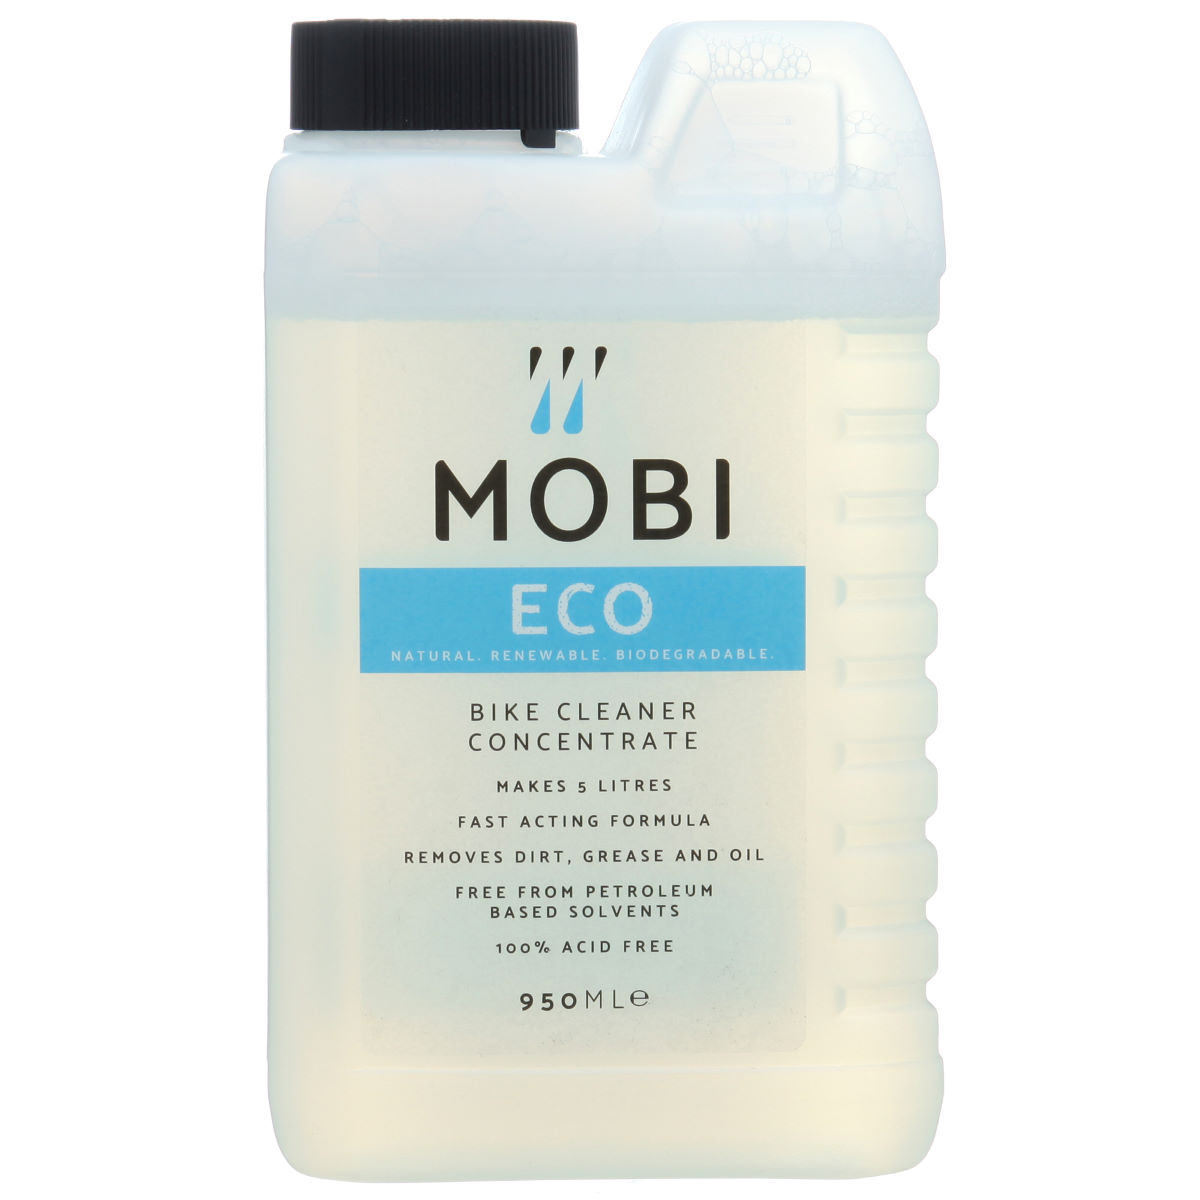 Mobi Eco Bike Cleaner Concentrate 950ml - 950ml  Cleaning Products